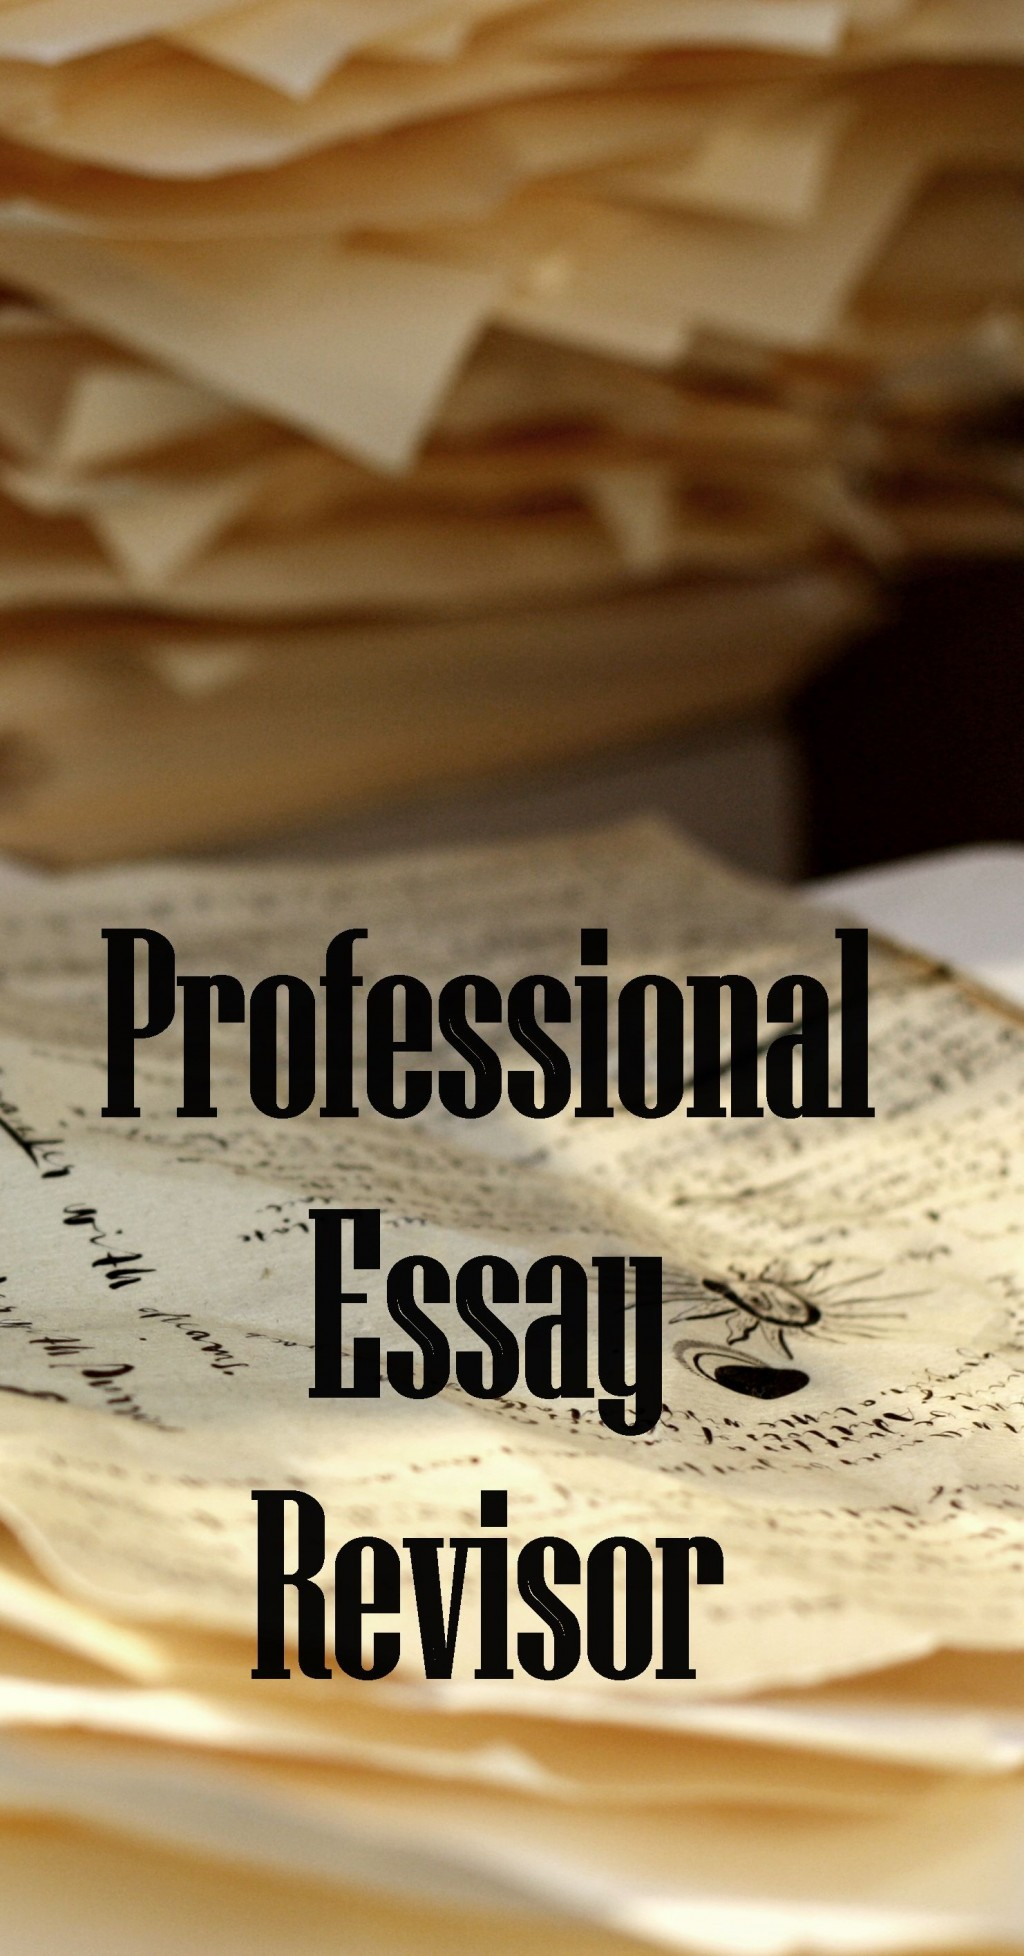 006 Essay Example Magnificent Revisor Sas Large